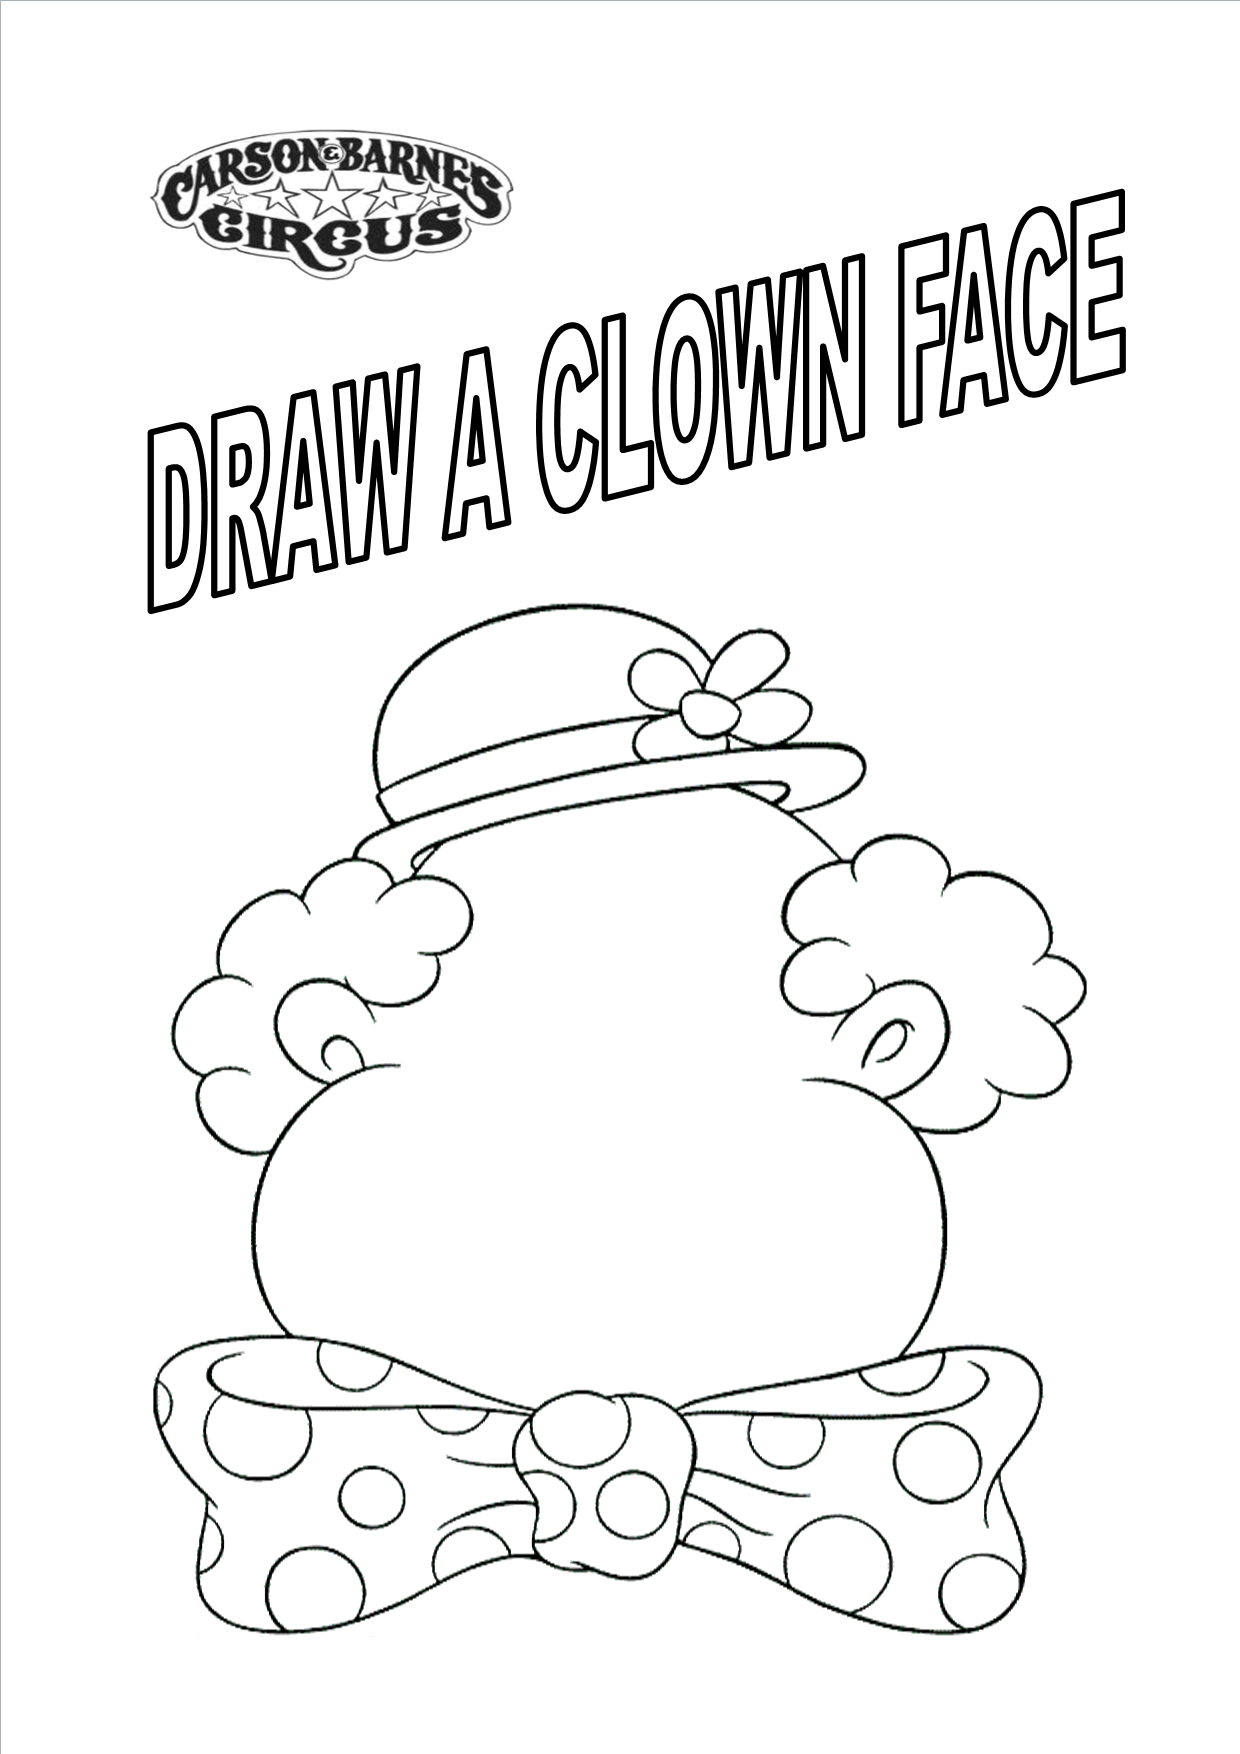 Coloring Page Draw A Clown Face